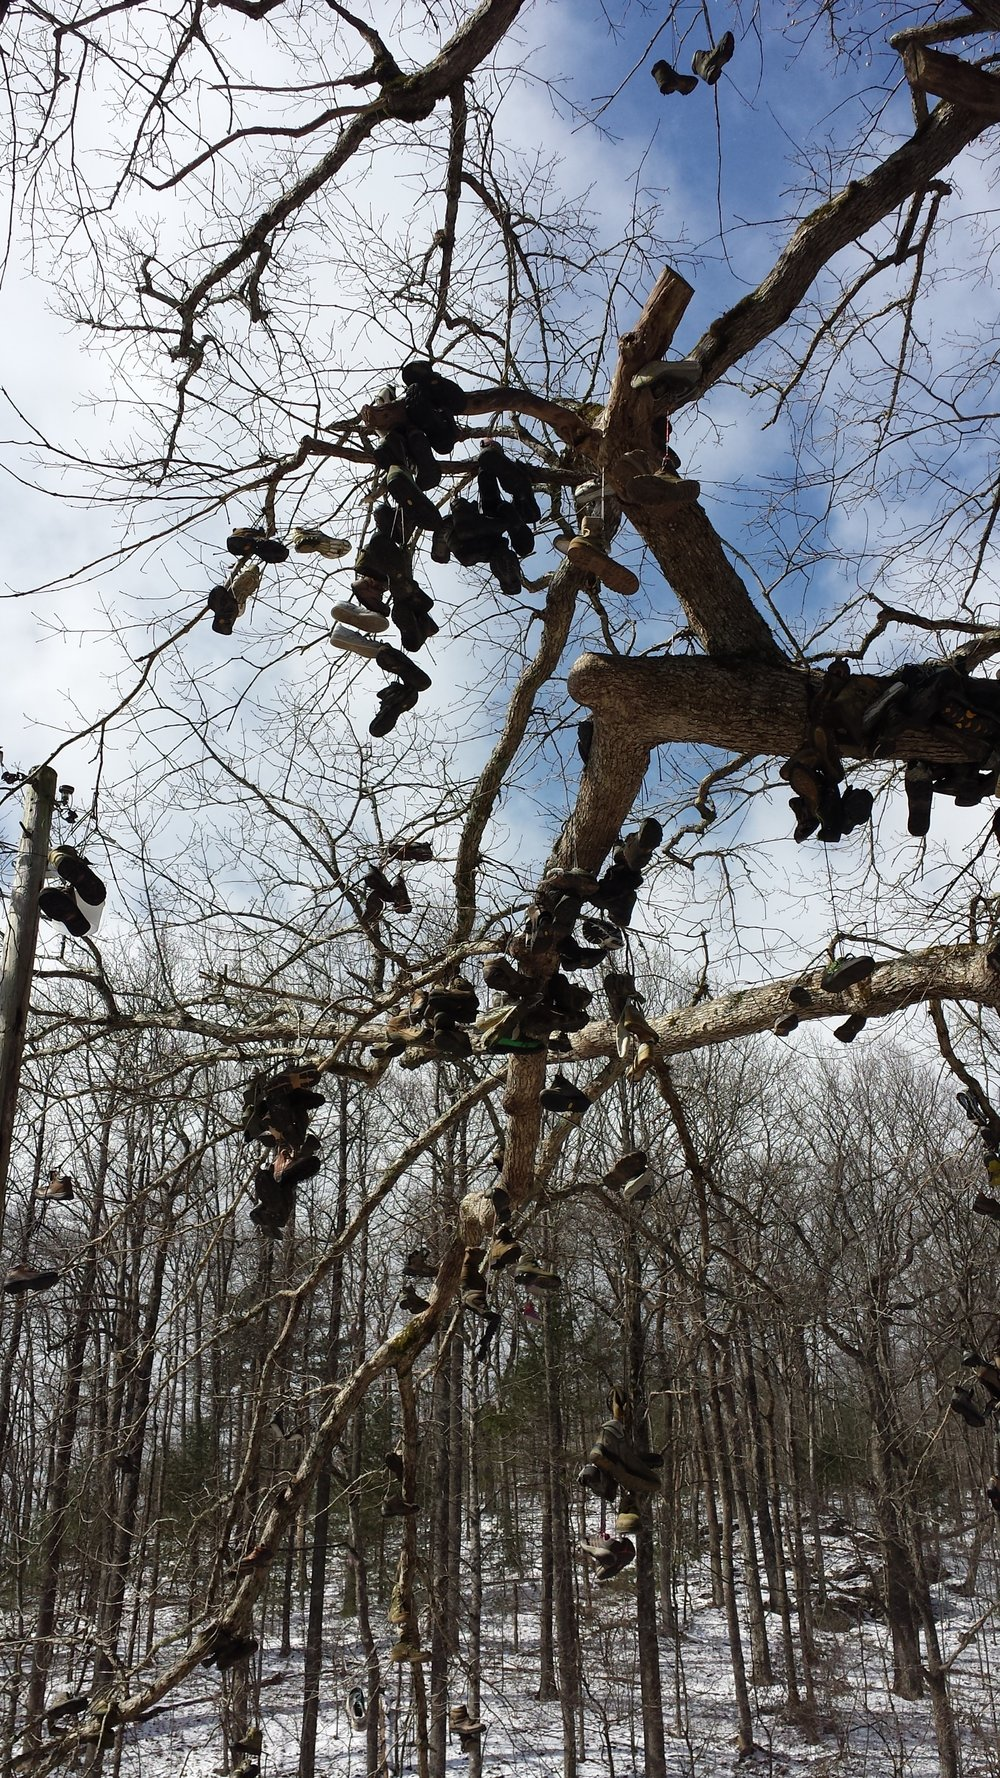 """The """"tree where hiking shoes go to die"""" outside of an outfitter in Neal's Gap, Georgia."""